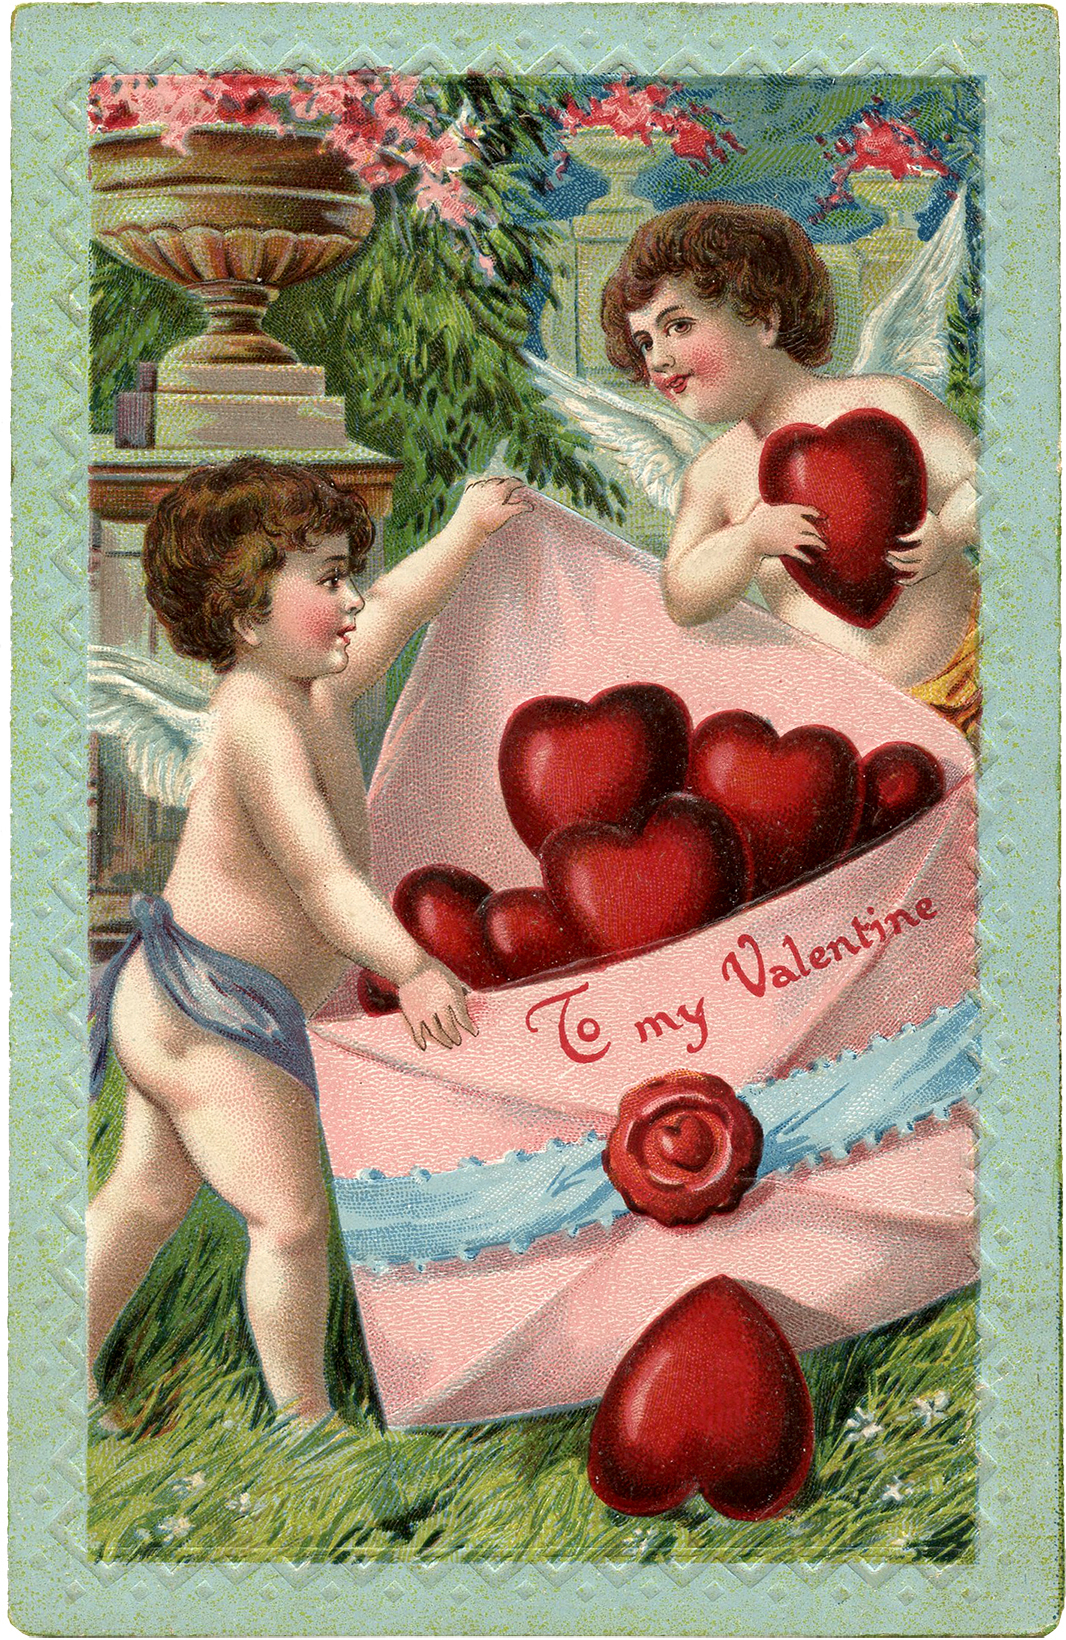 Cupids and Hearts Valentine Image